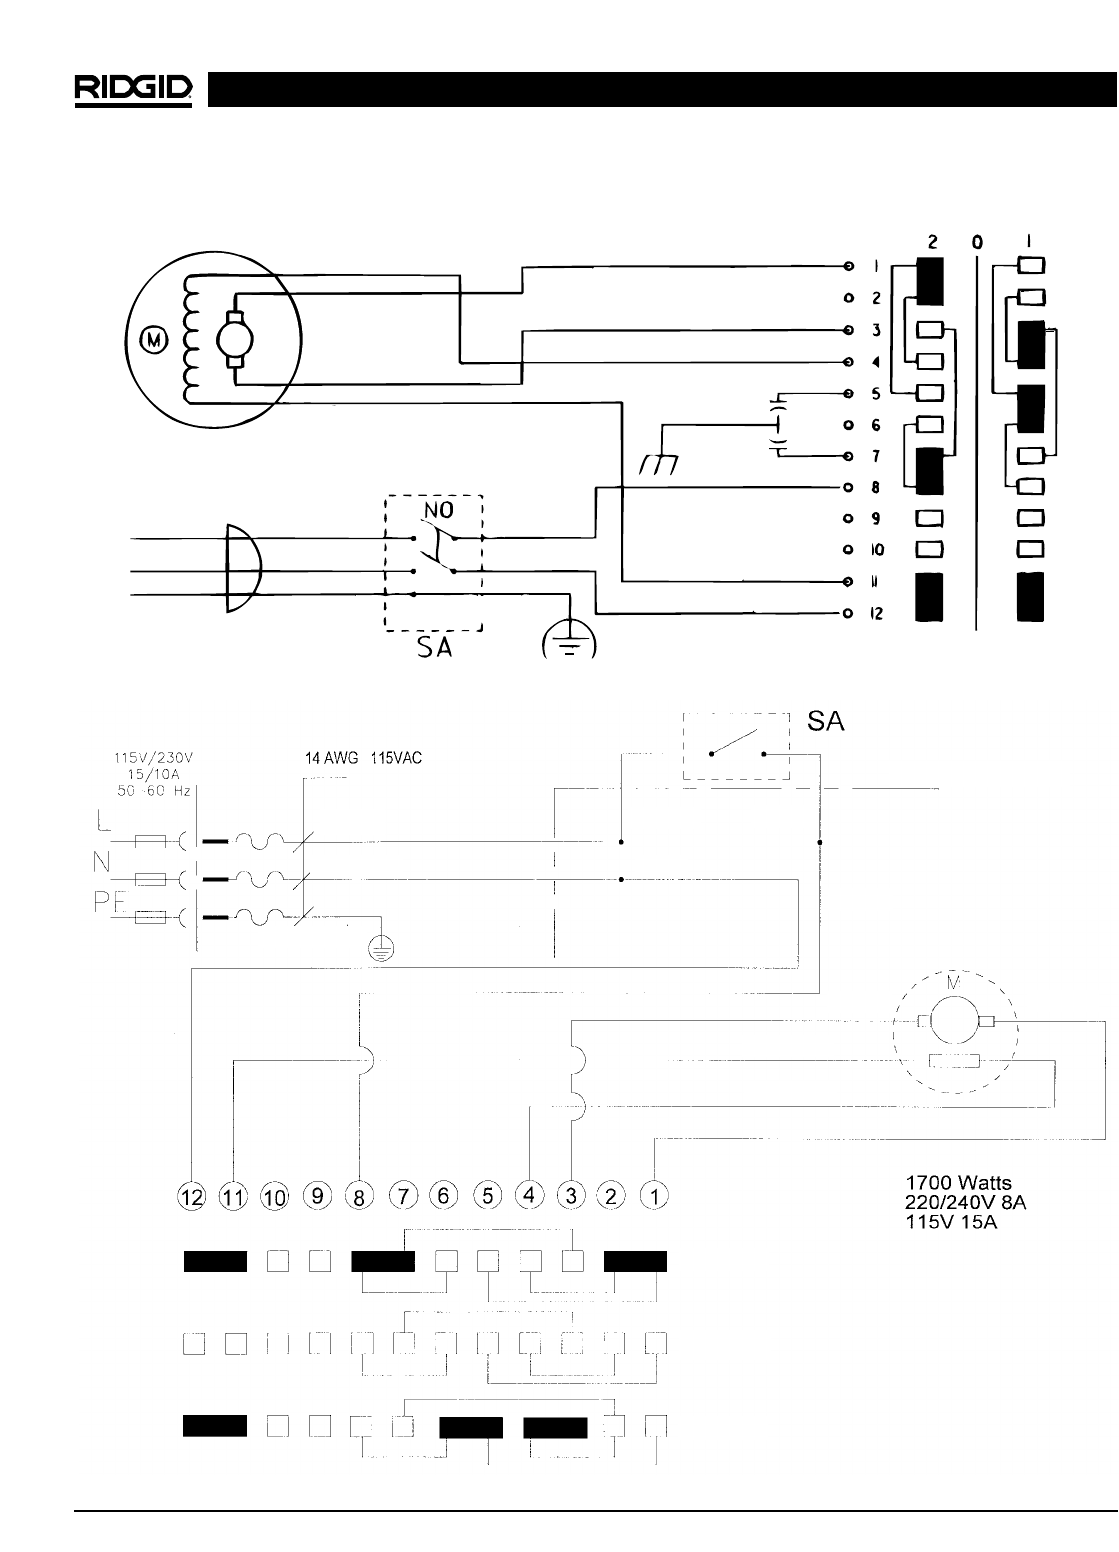 68b109bc 3c1f 445d 9958 08de9edaa37c bg14 page 20 of ridgid sewing machine 300 user guide manualsonline com ridgid r4513 wiring diagram at pacquiaovsvargaslive.co